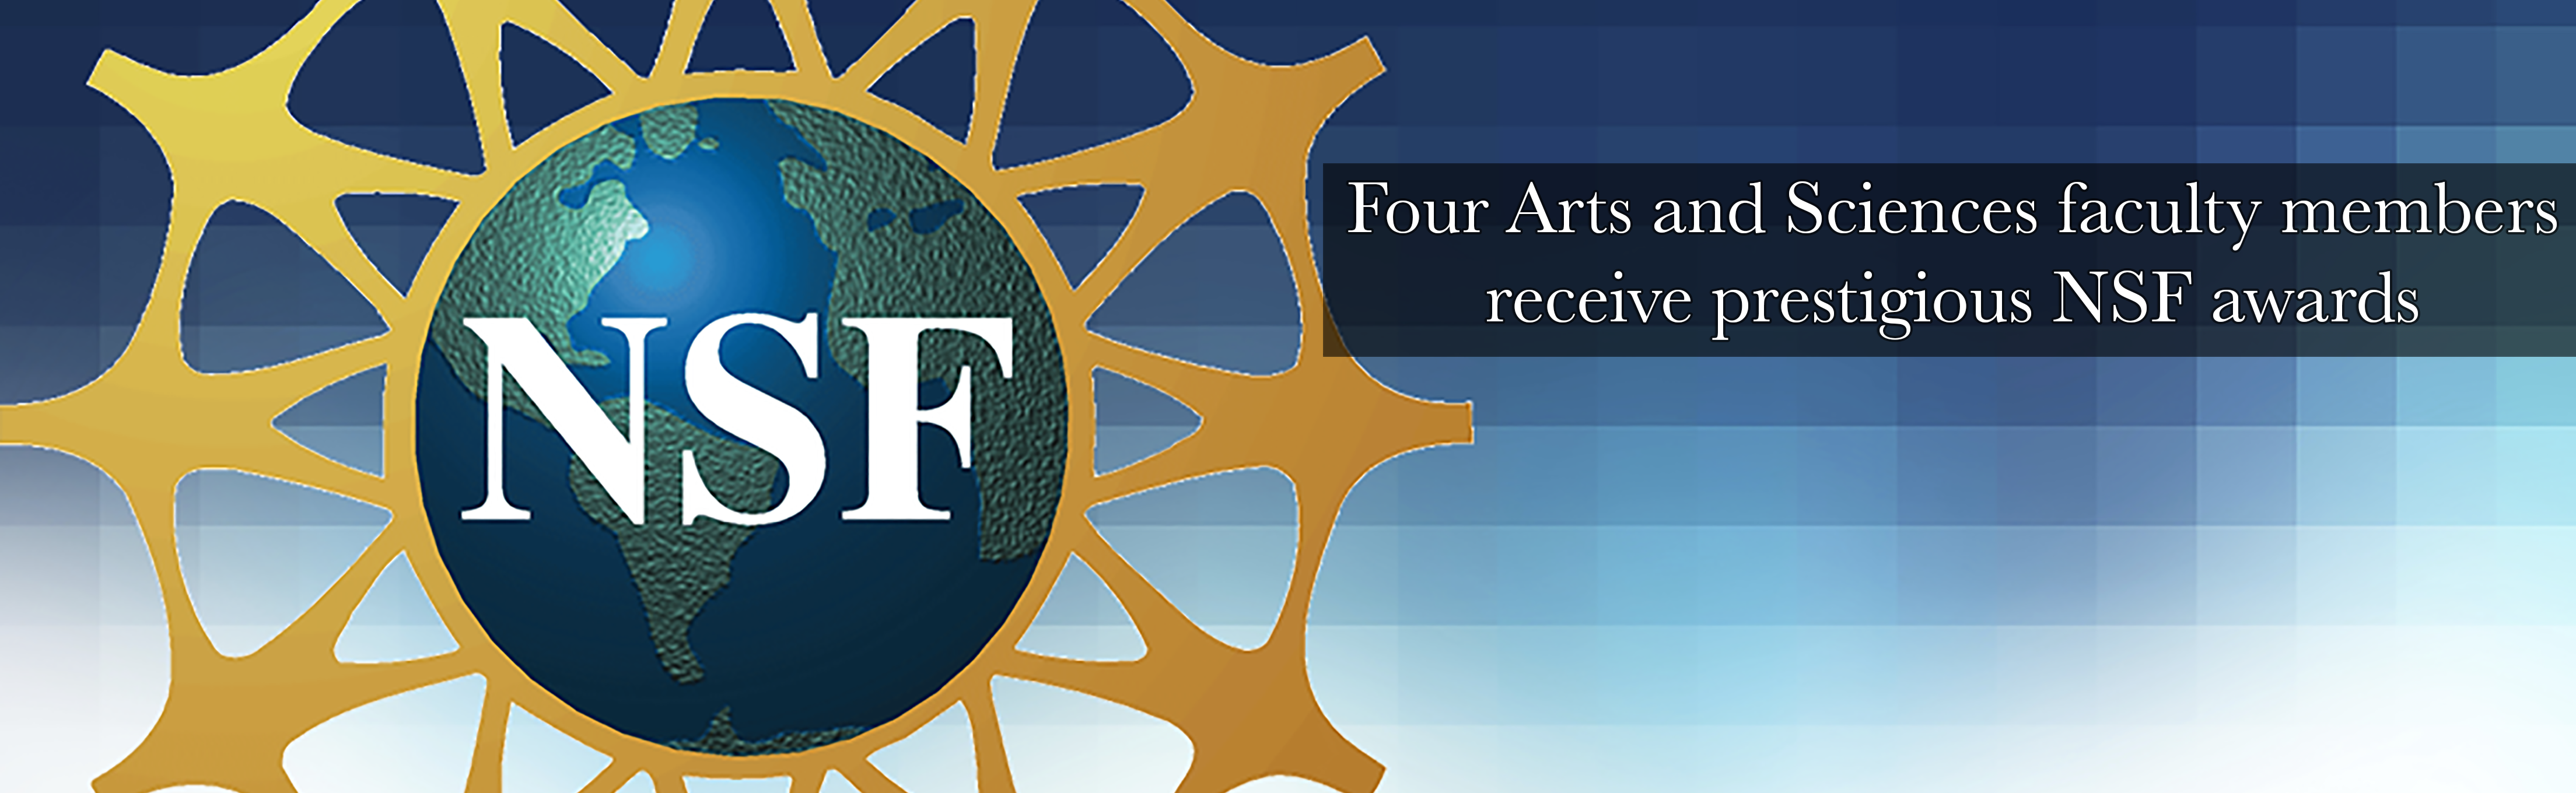 Four Arts and Sciences faculty members receive prestigious NSF awards